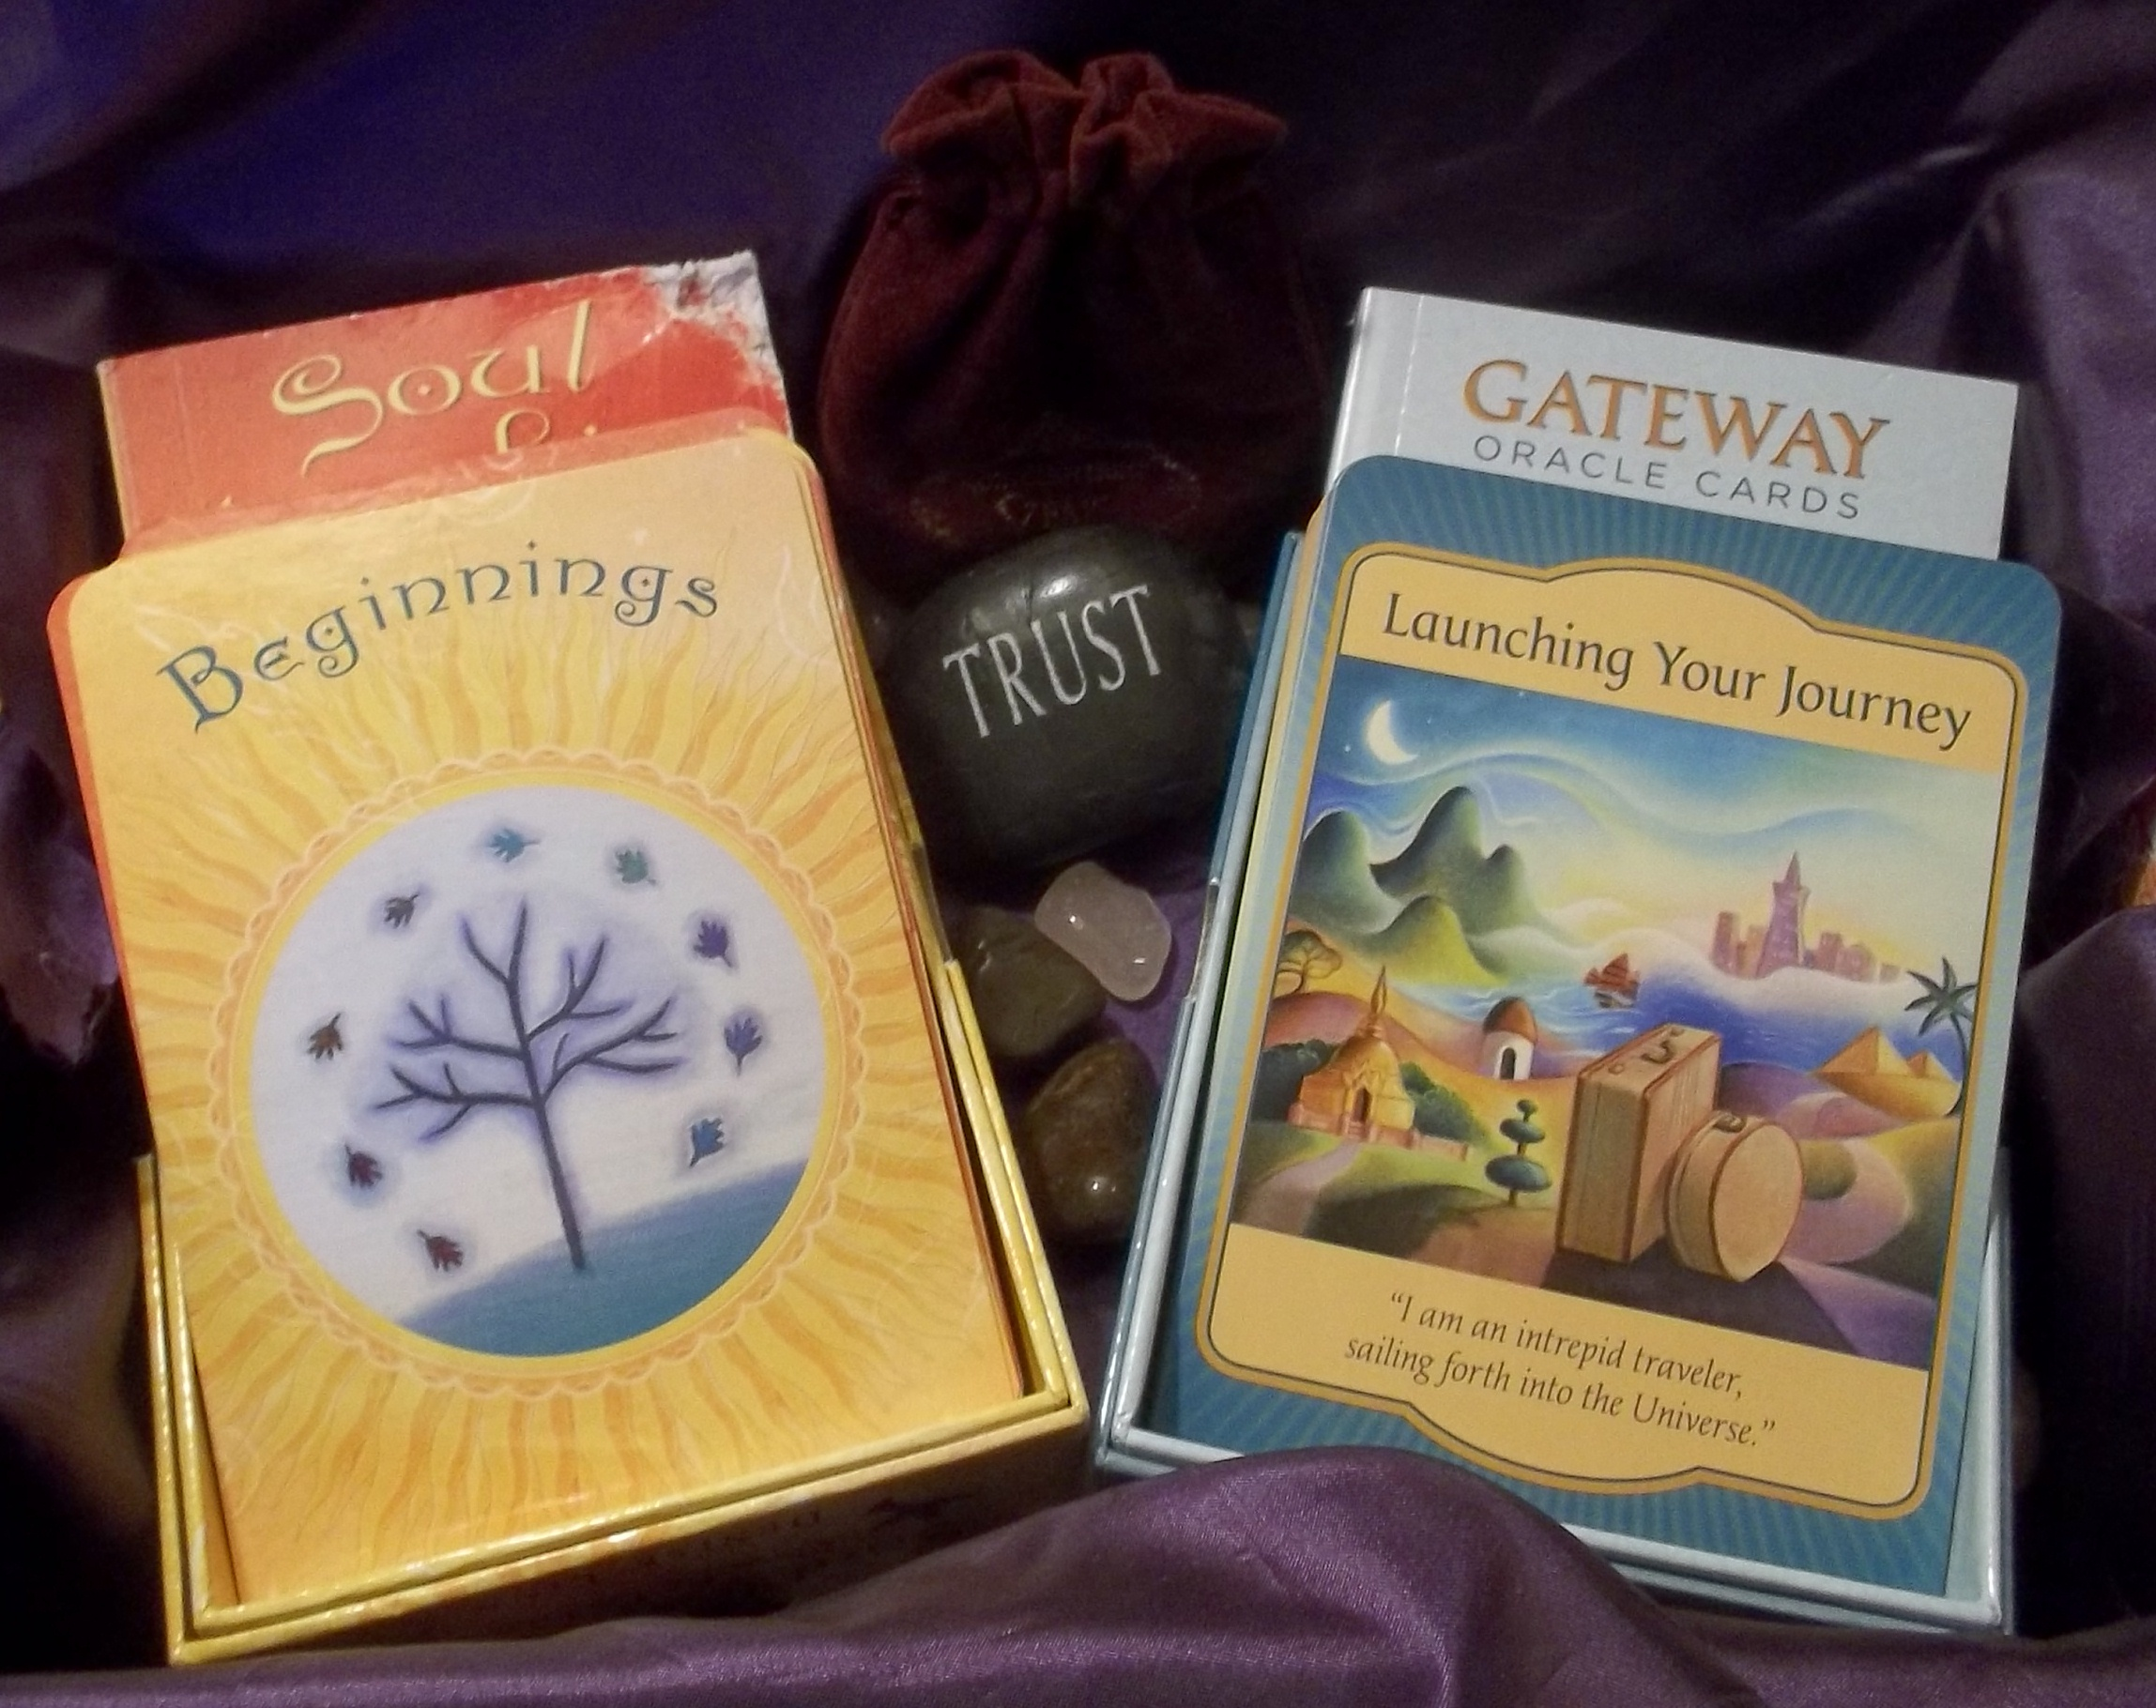 Soul Coaching Oracle Cards & Gateway Oracle Cards by Denise Linn (pub: Hay House)